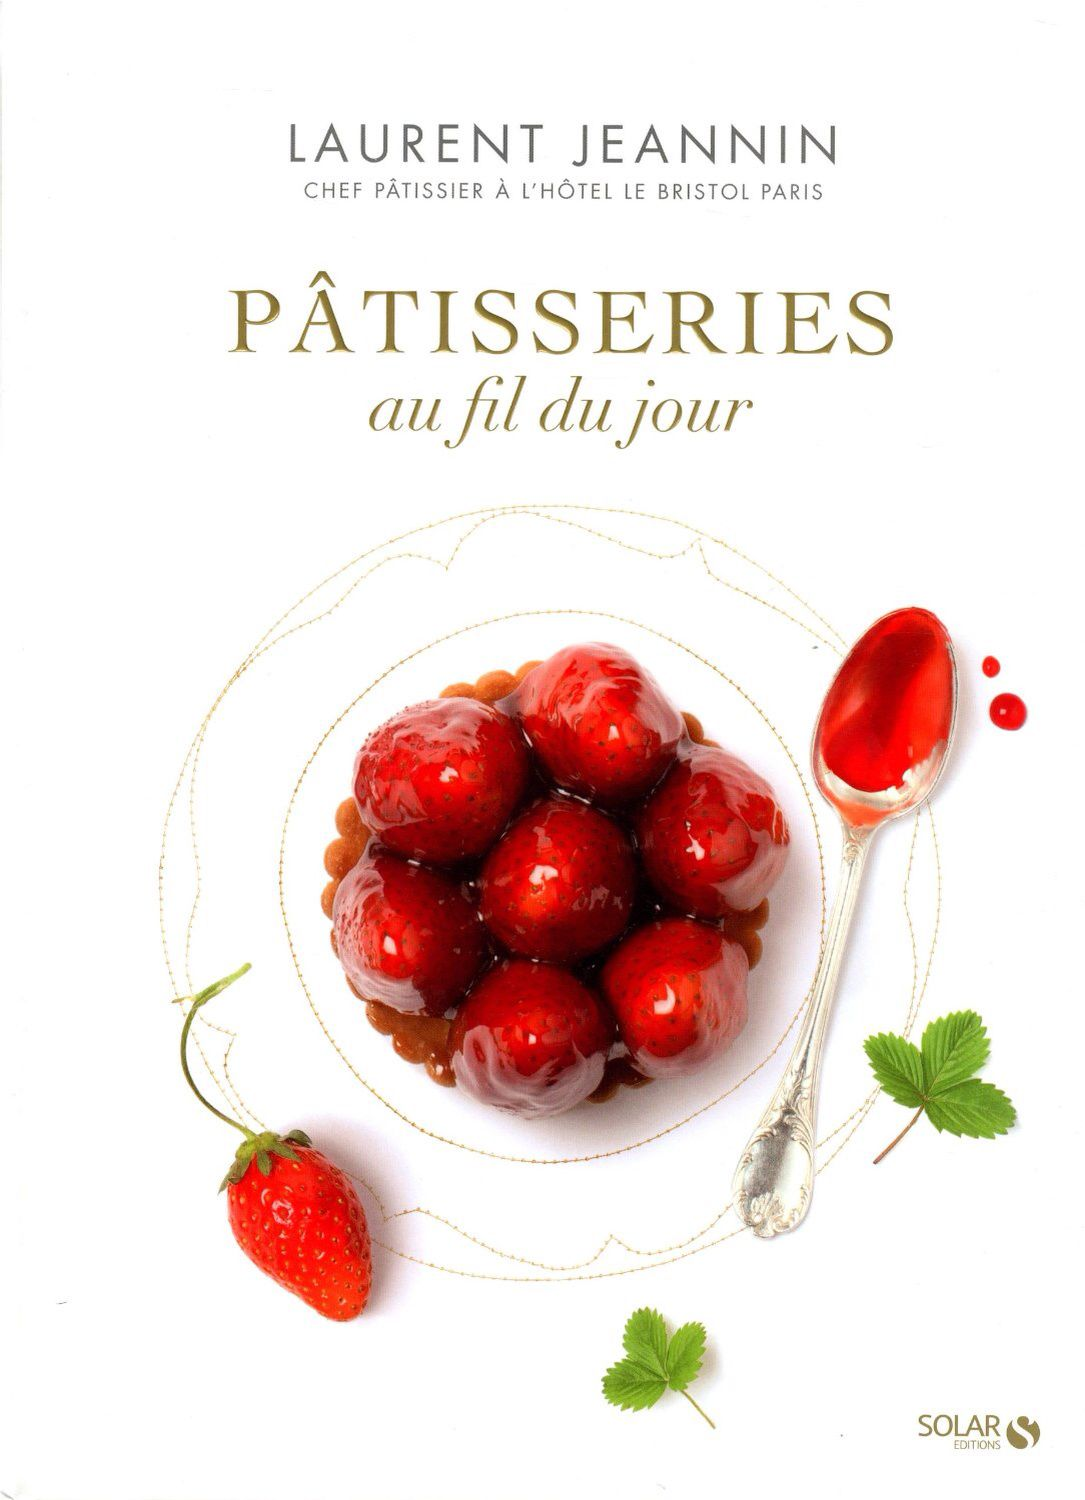 Financiers aux pralines roses [Laurent Jeannin]